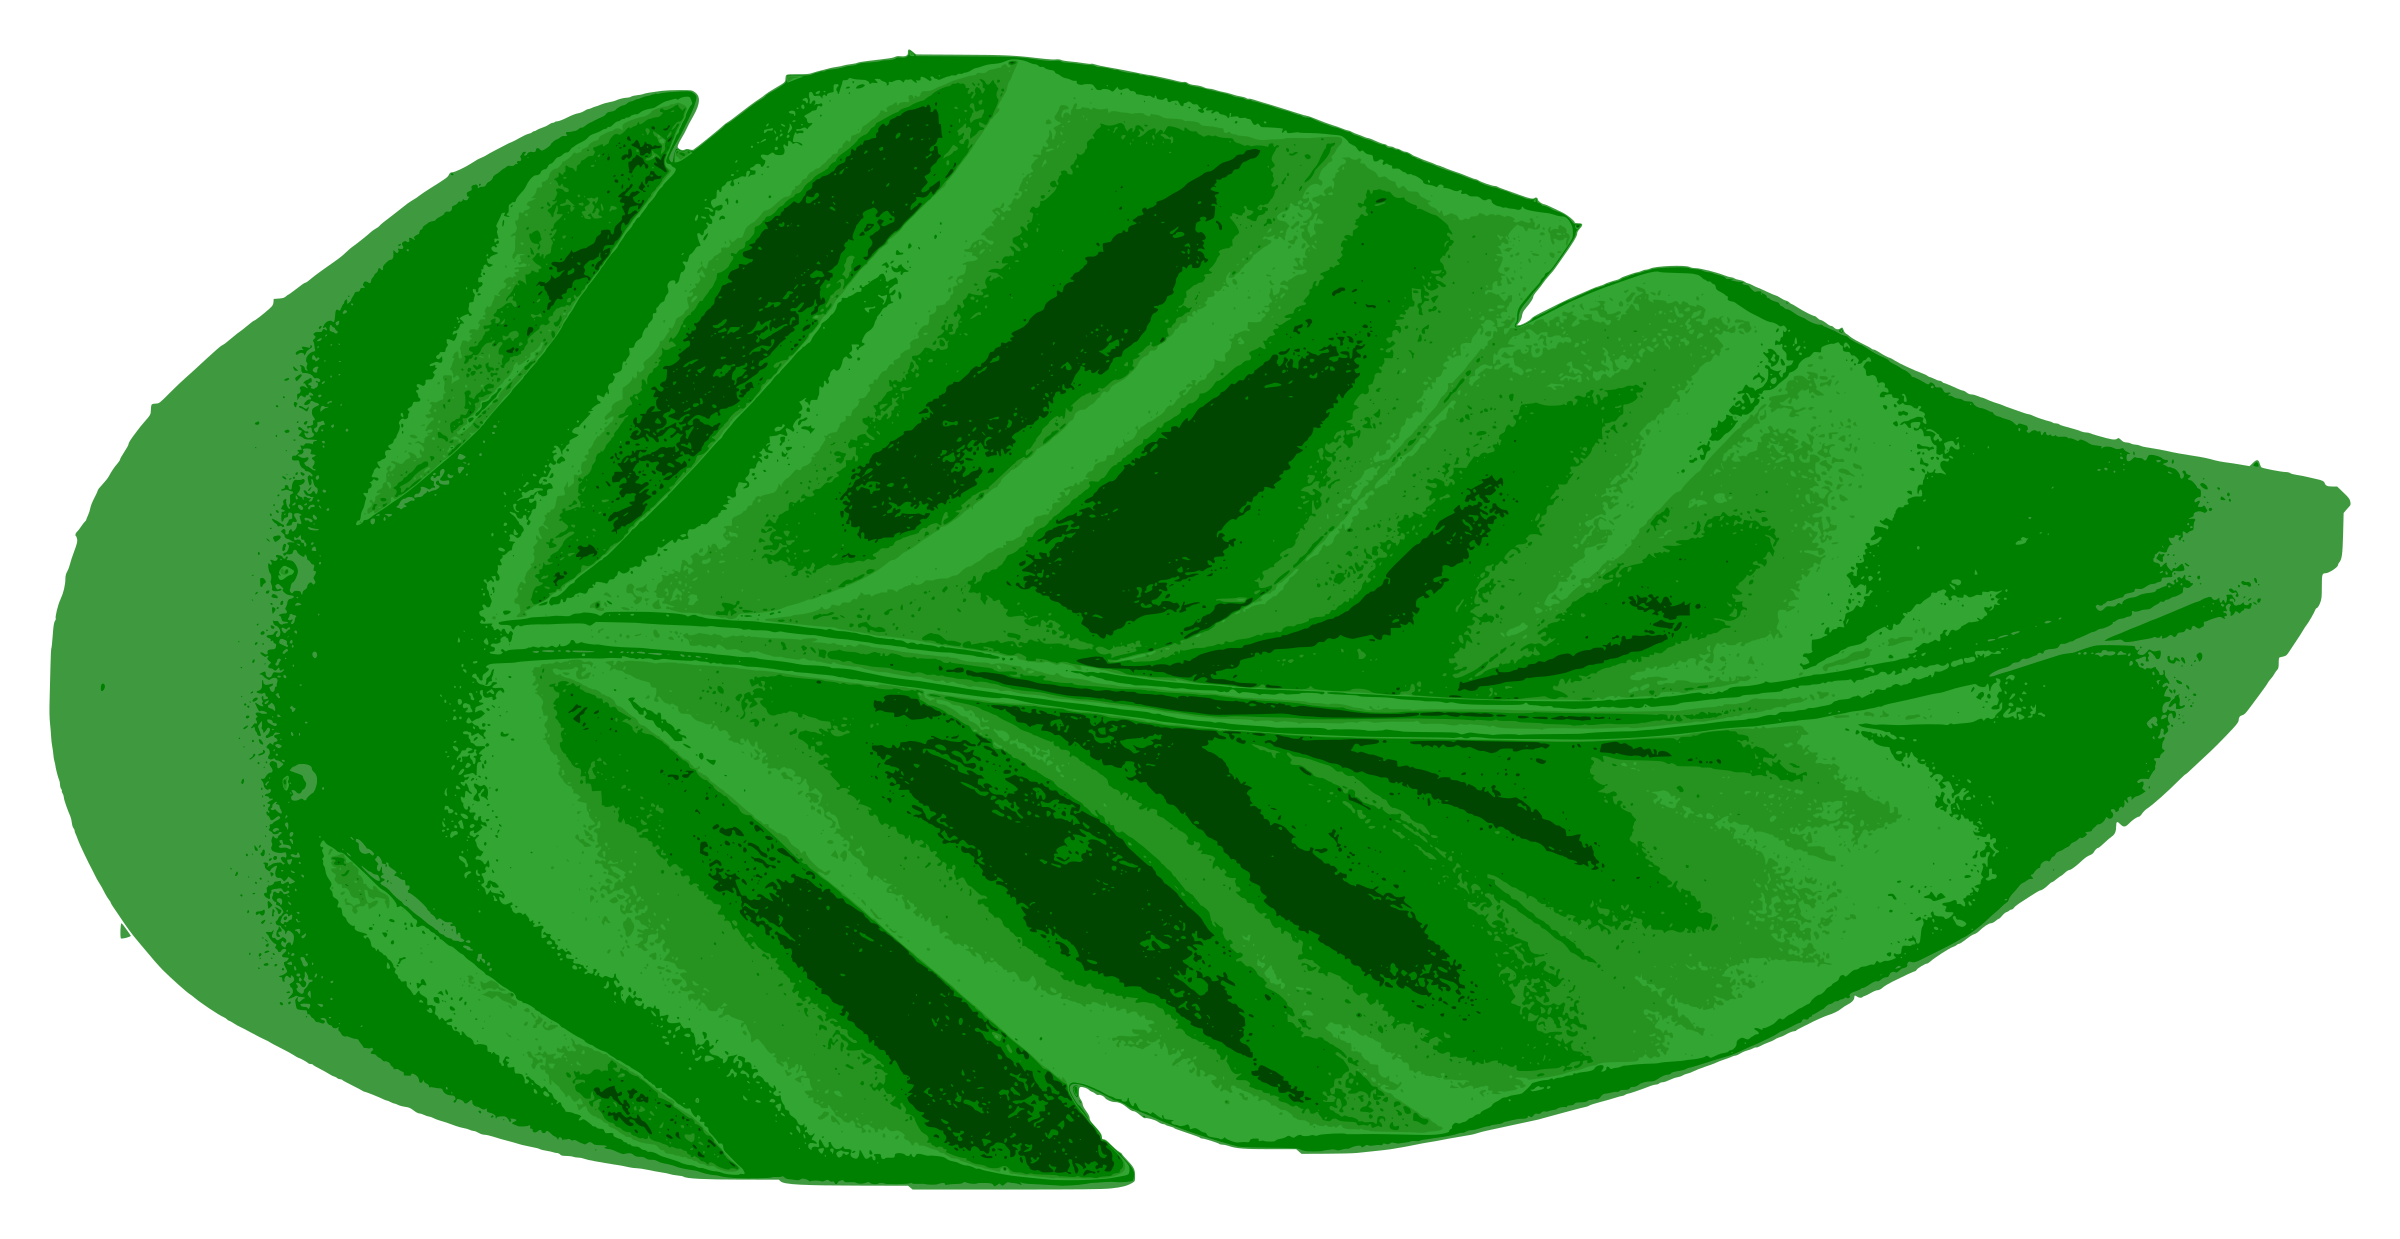 Clipart leaves large leave. Tropical leaf icons png